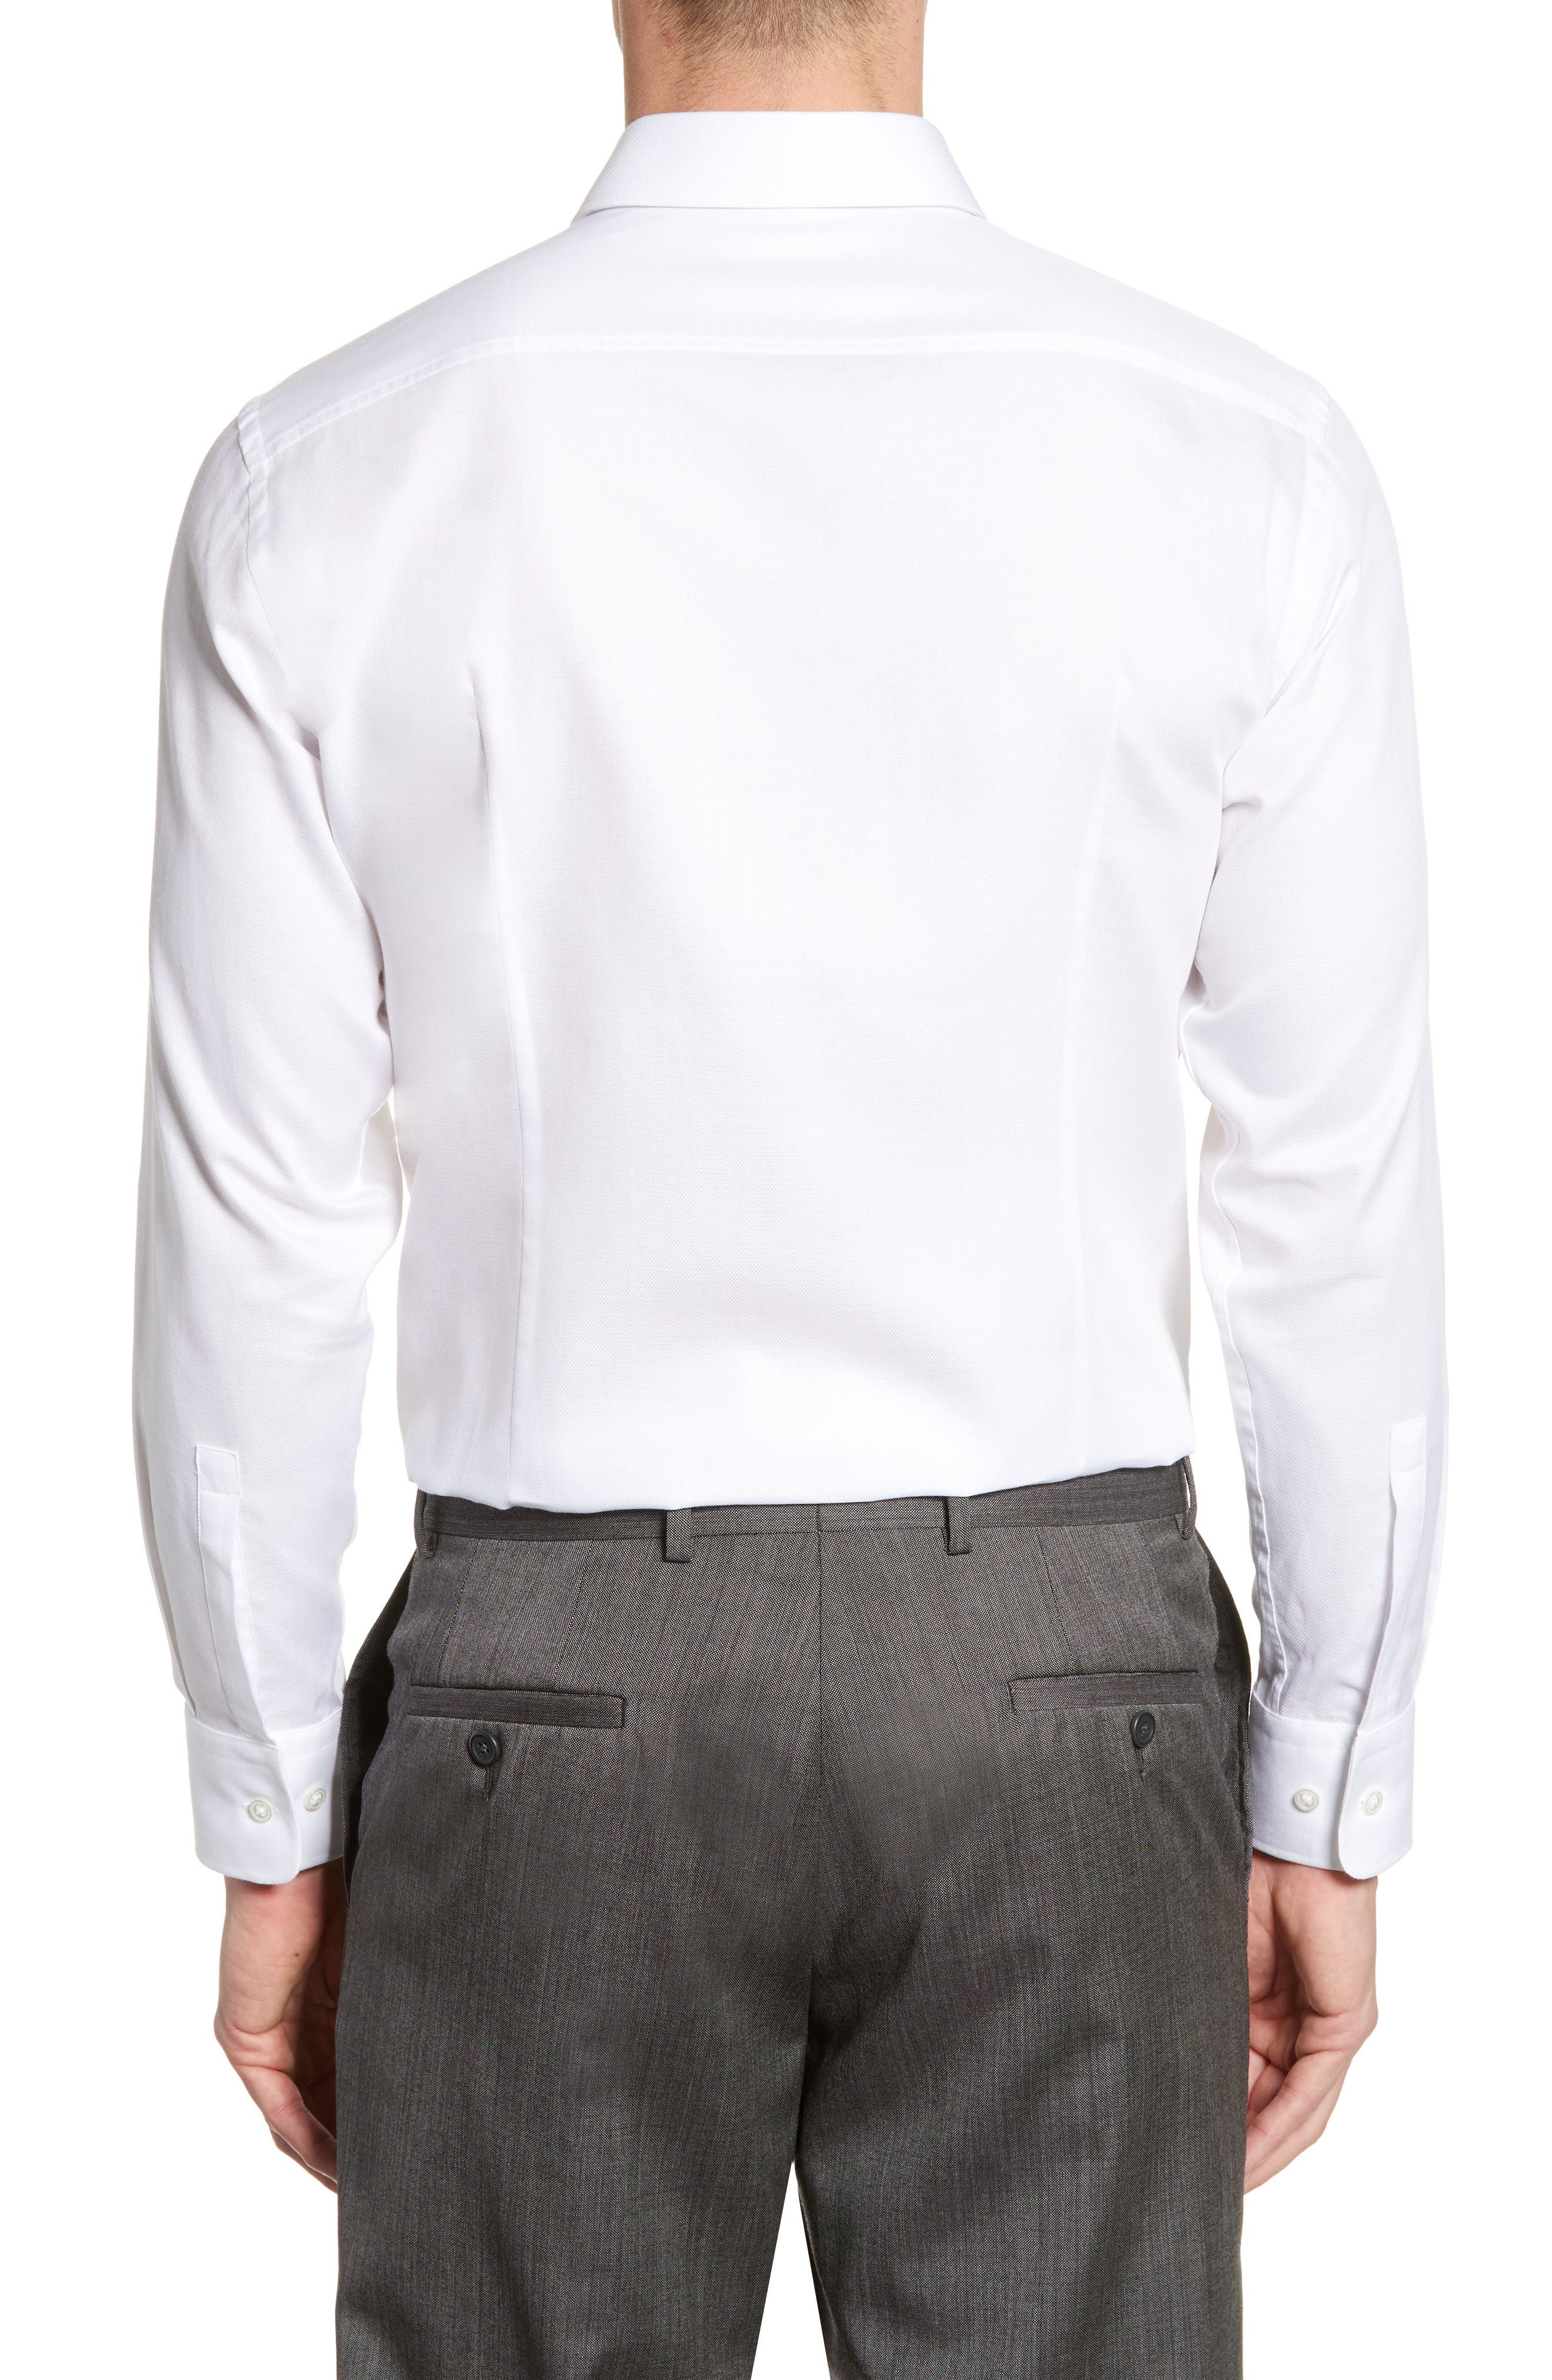 BOSS, Marley Sharp Fit Dress Shirt, Alternate thumbnail 3, color, WHITE